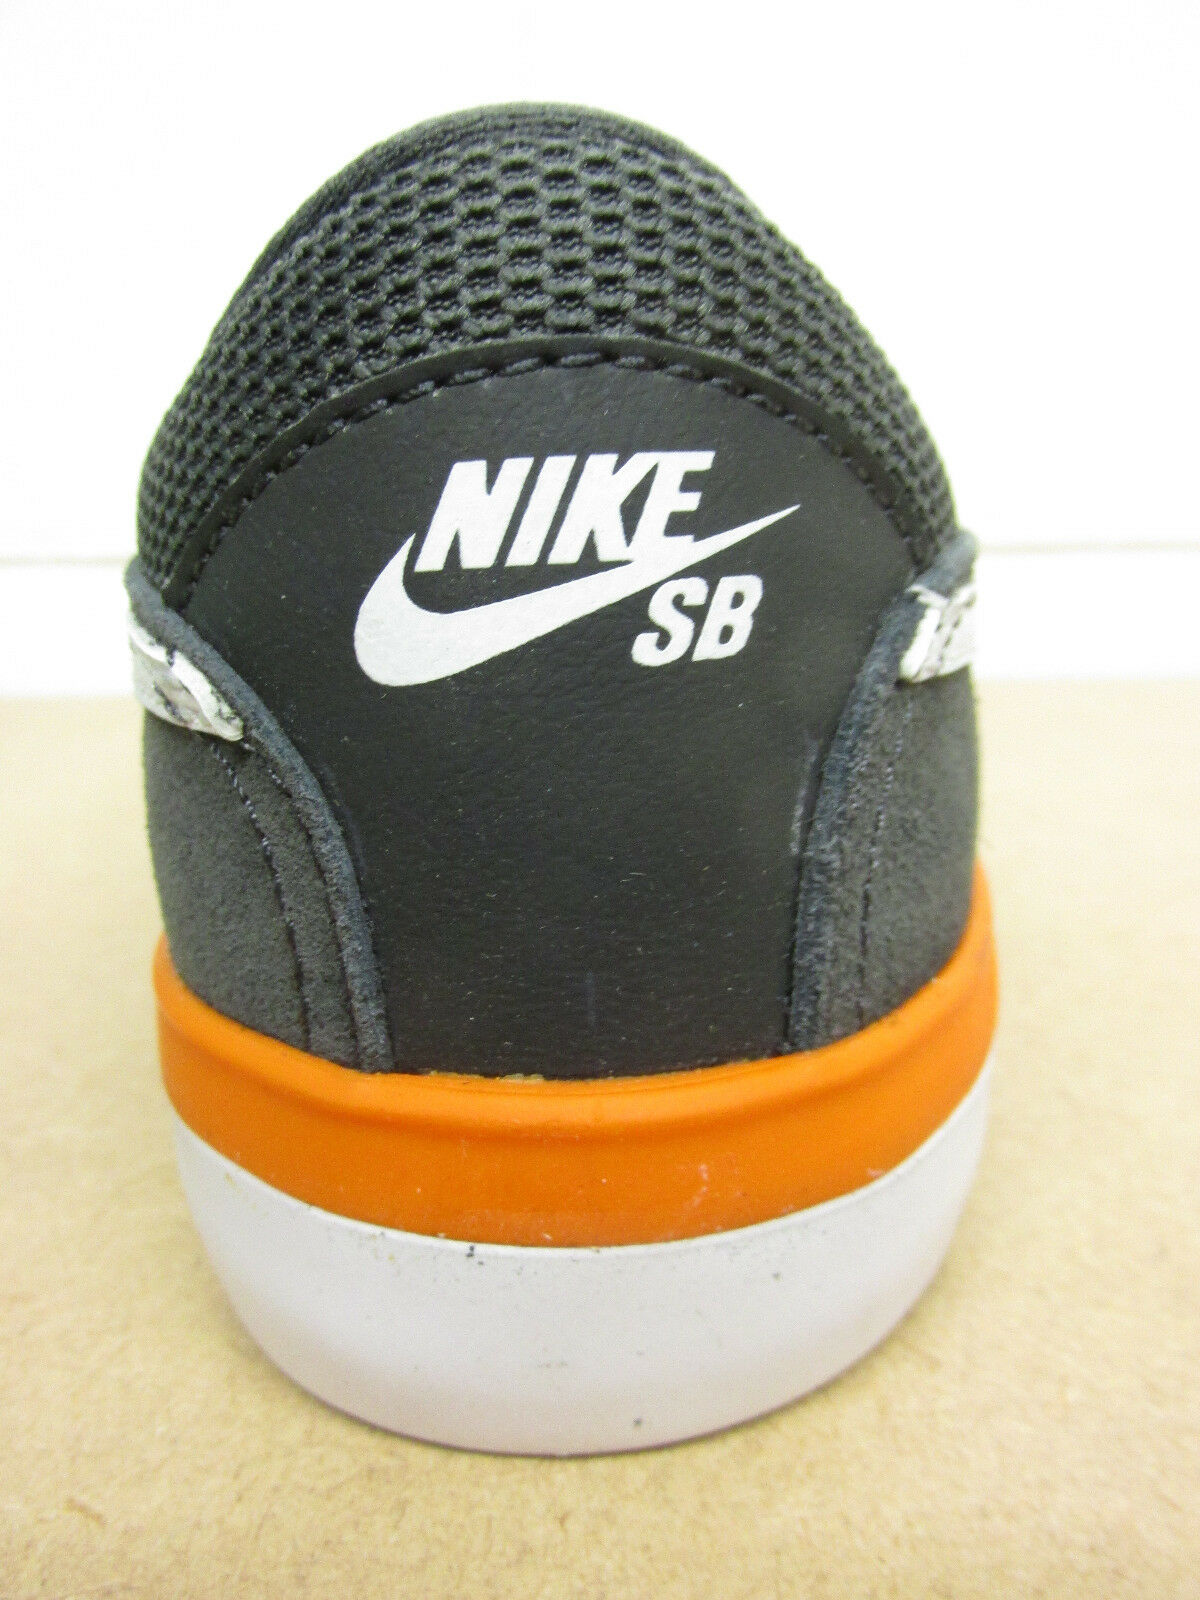 Nike SB Koston Hypervulc Mens Trainers Trainers Trainers 844447 018 Sneakers shoes f1d5b2